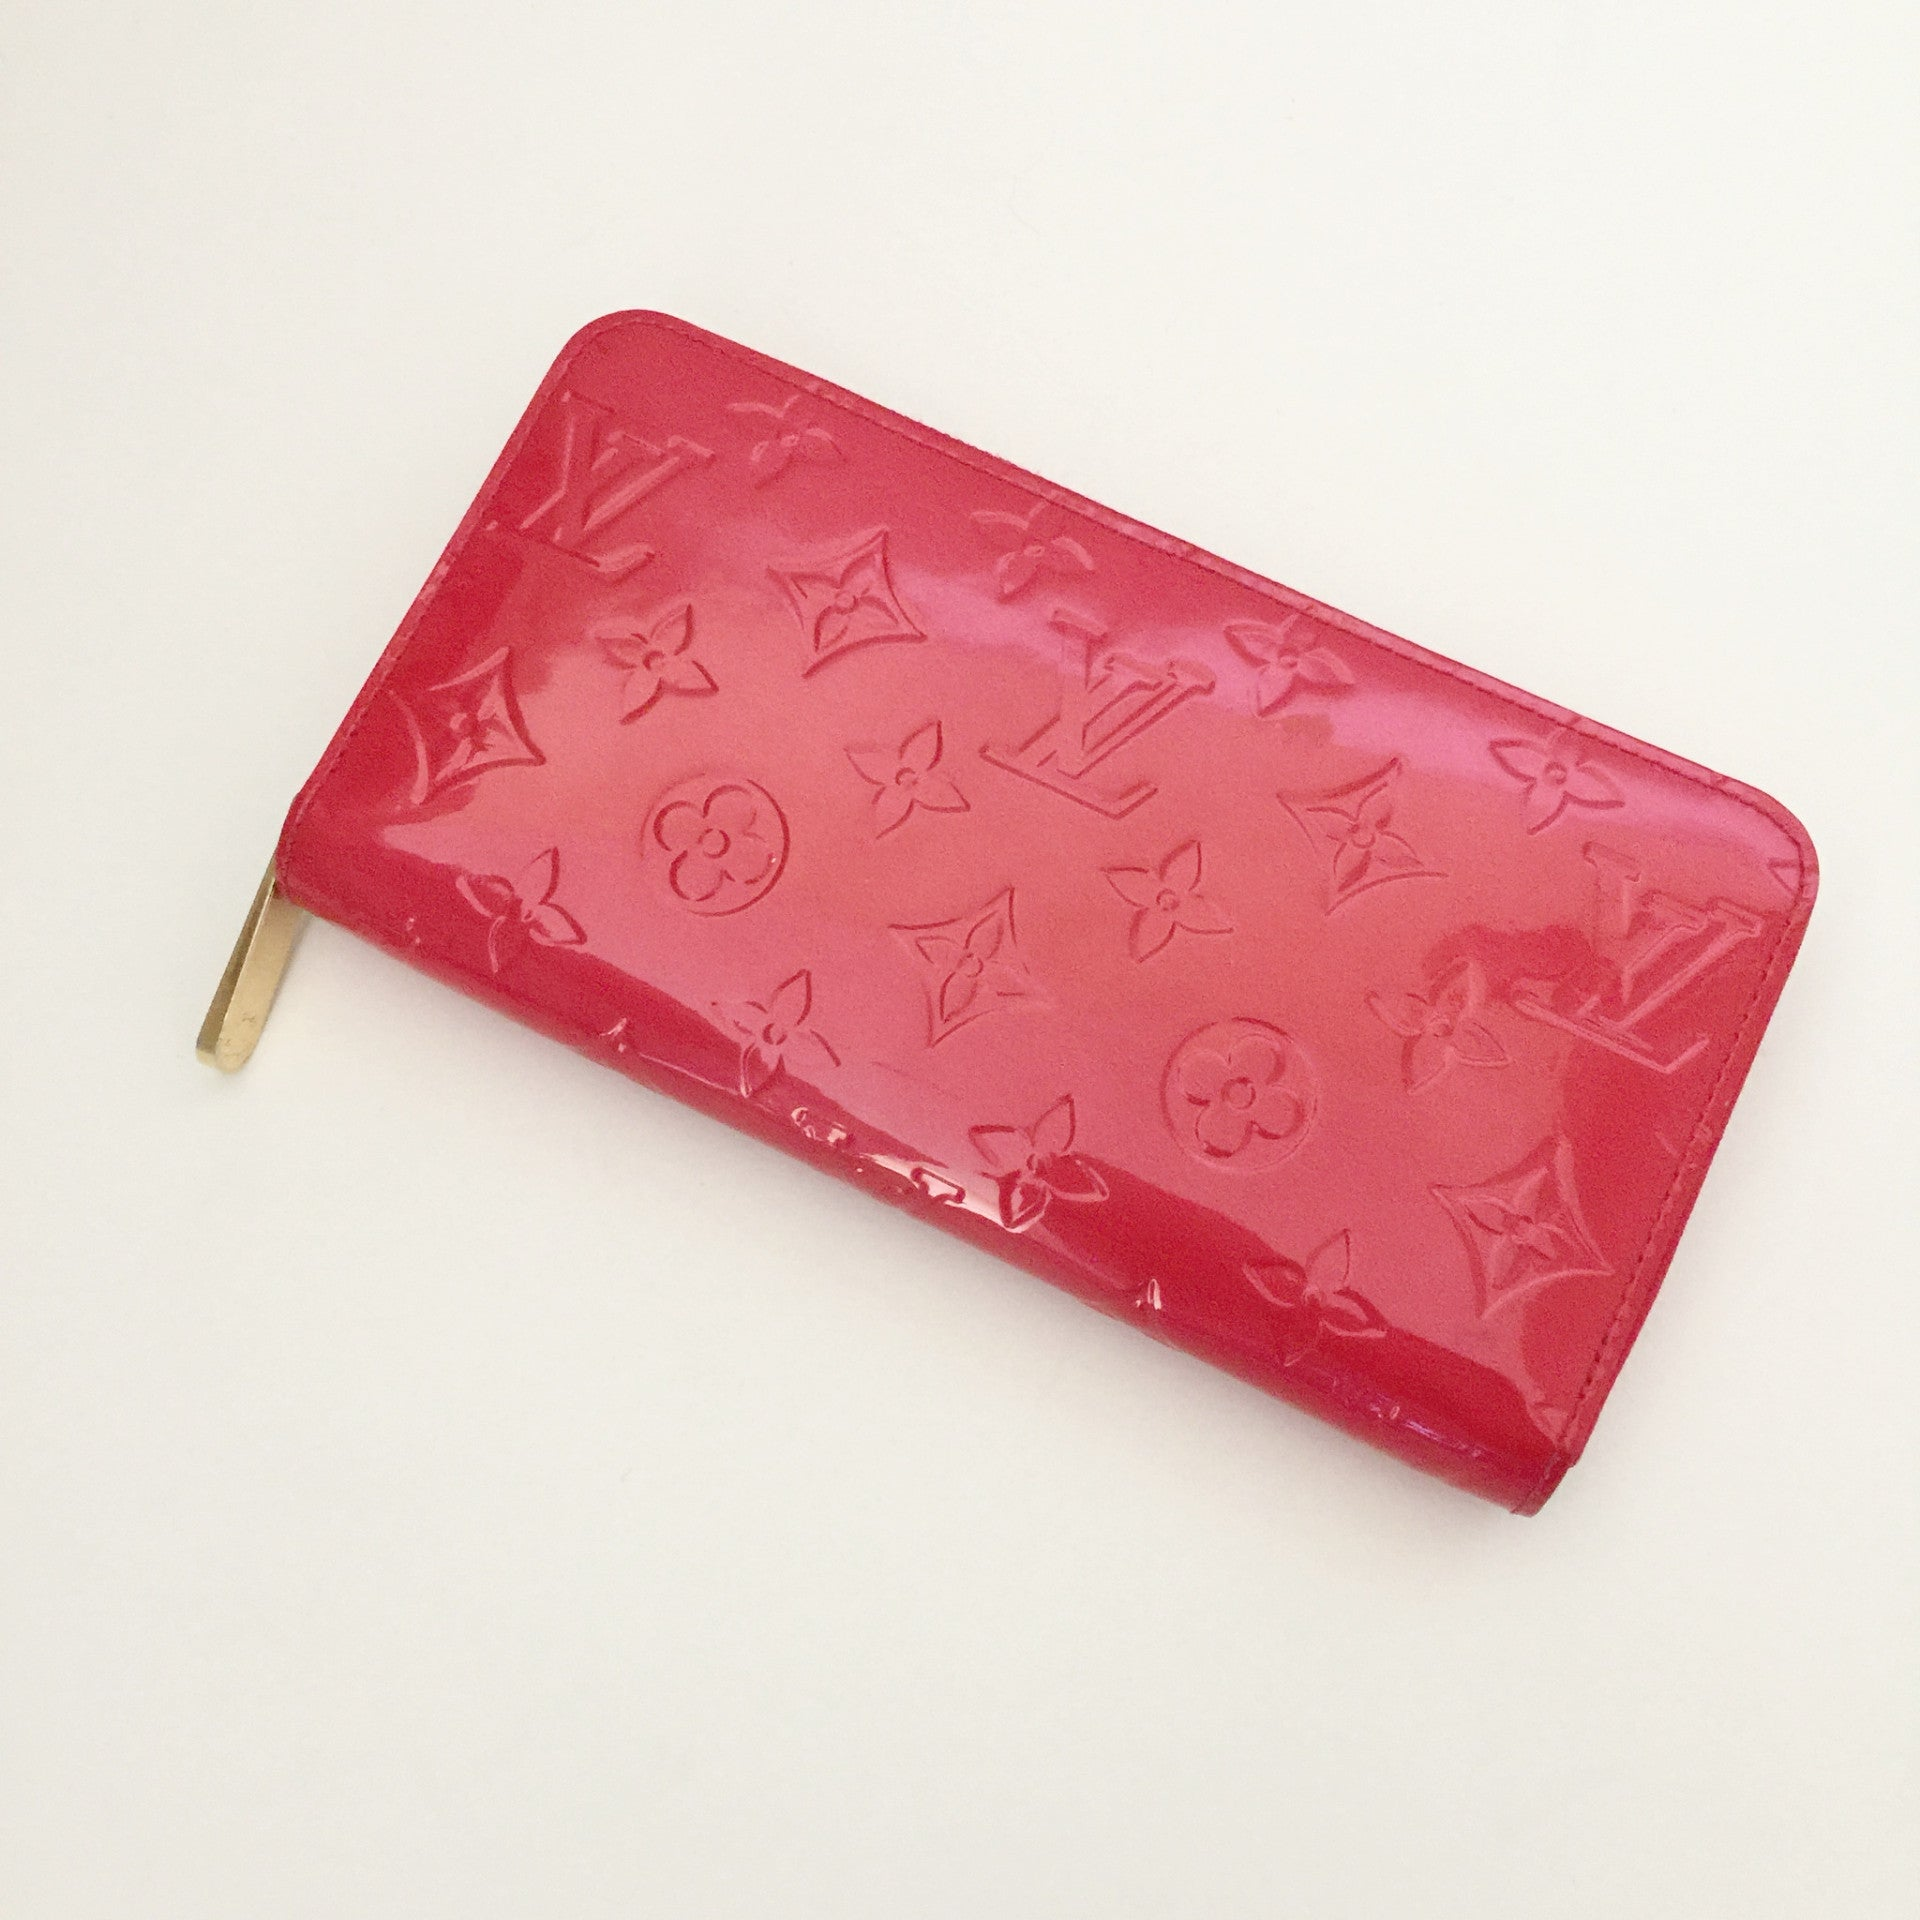 Authentic LOUIS VUITTON Vernis Wallet in Rouge Grenadine